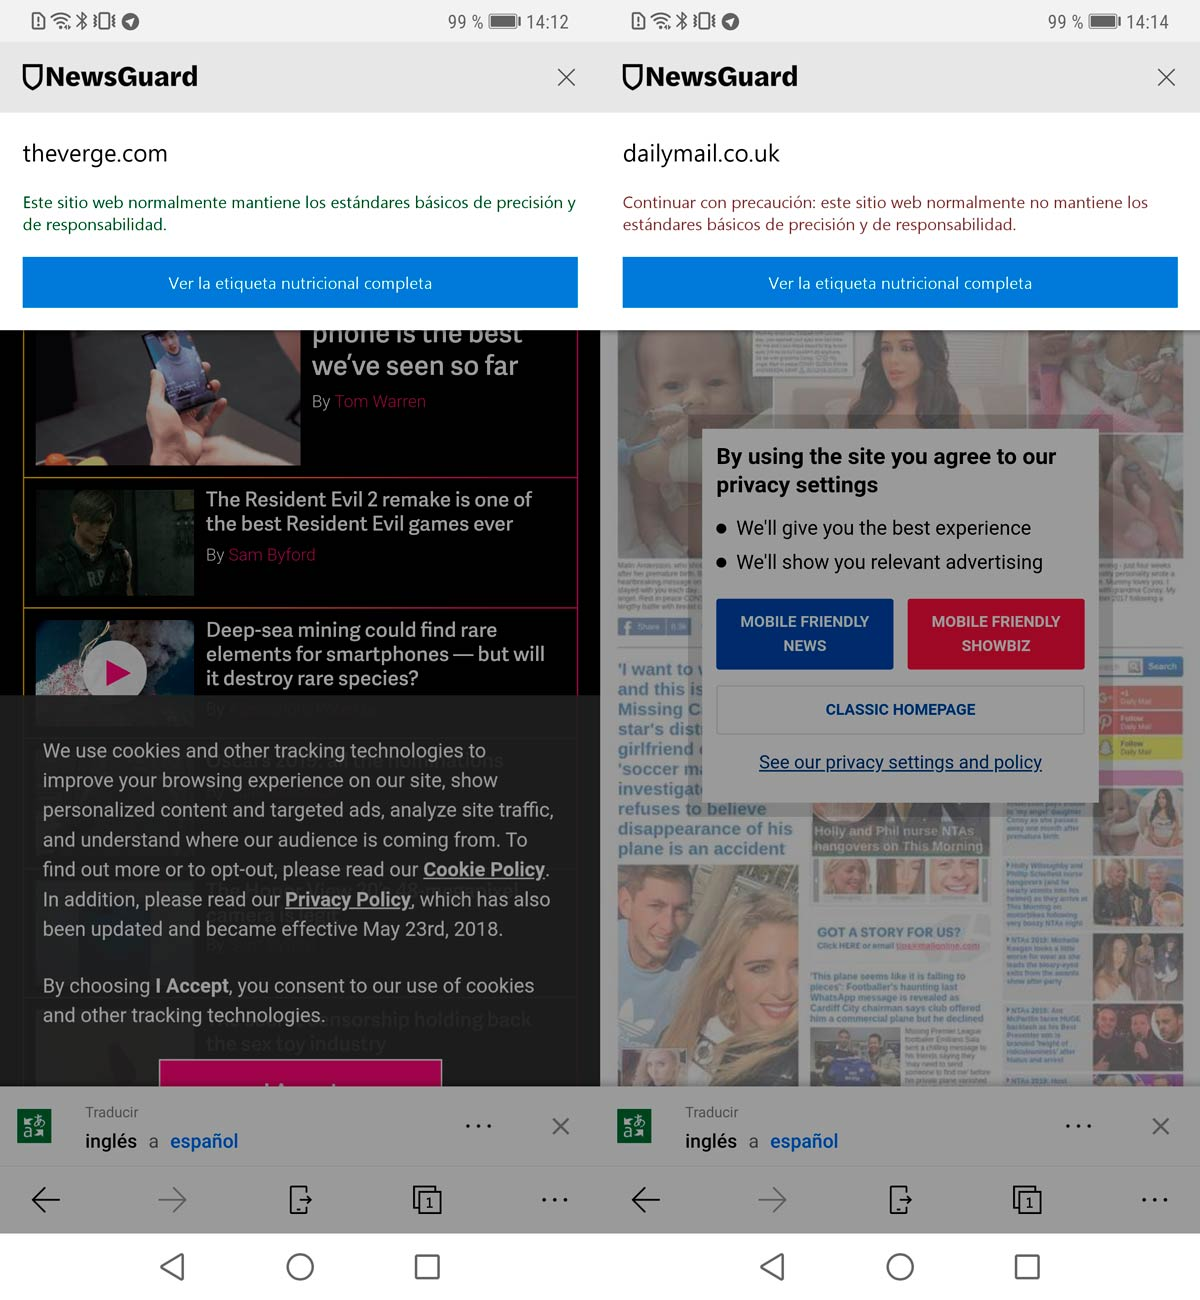 Microsoft's browser notifies you if the page publishes fake news